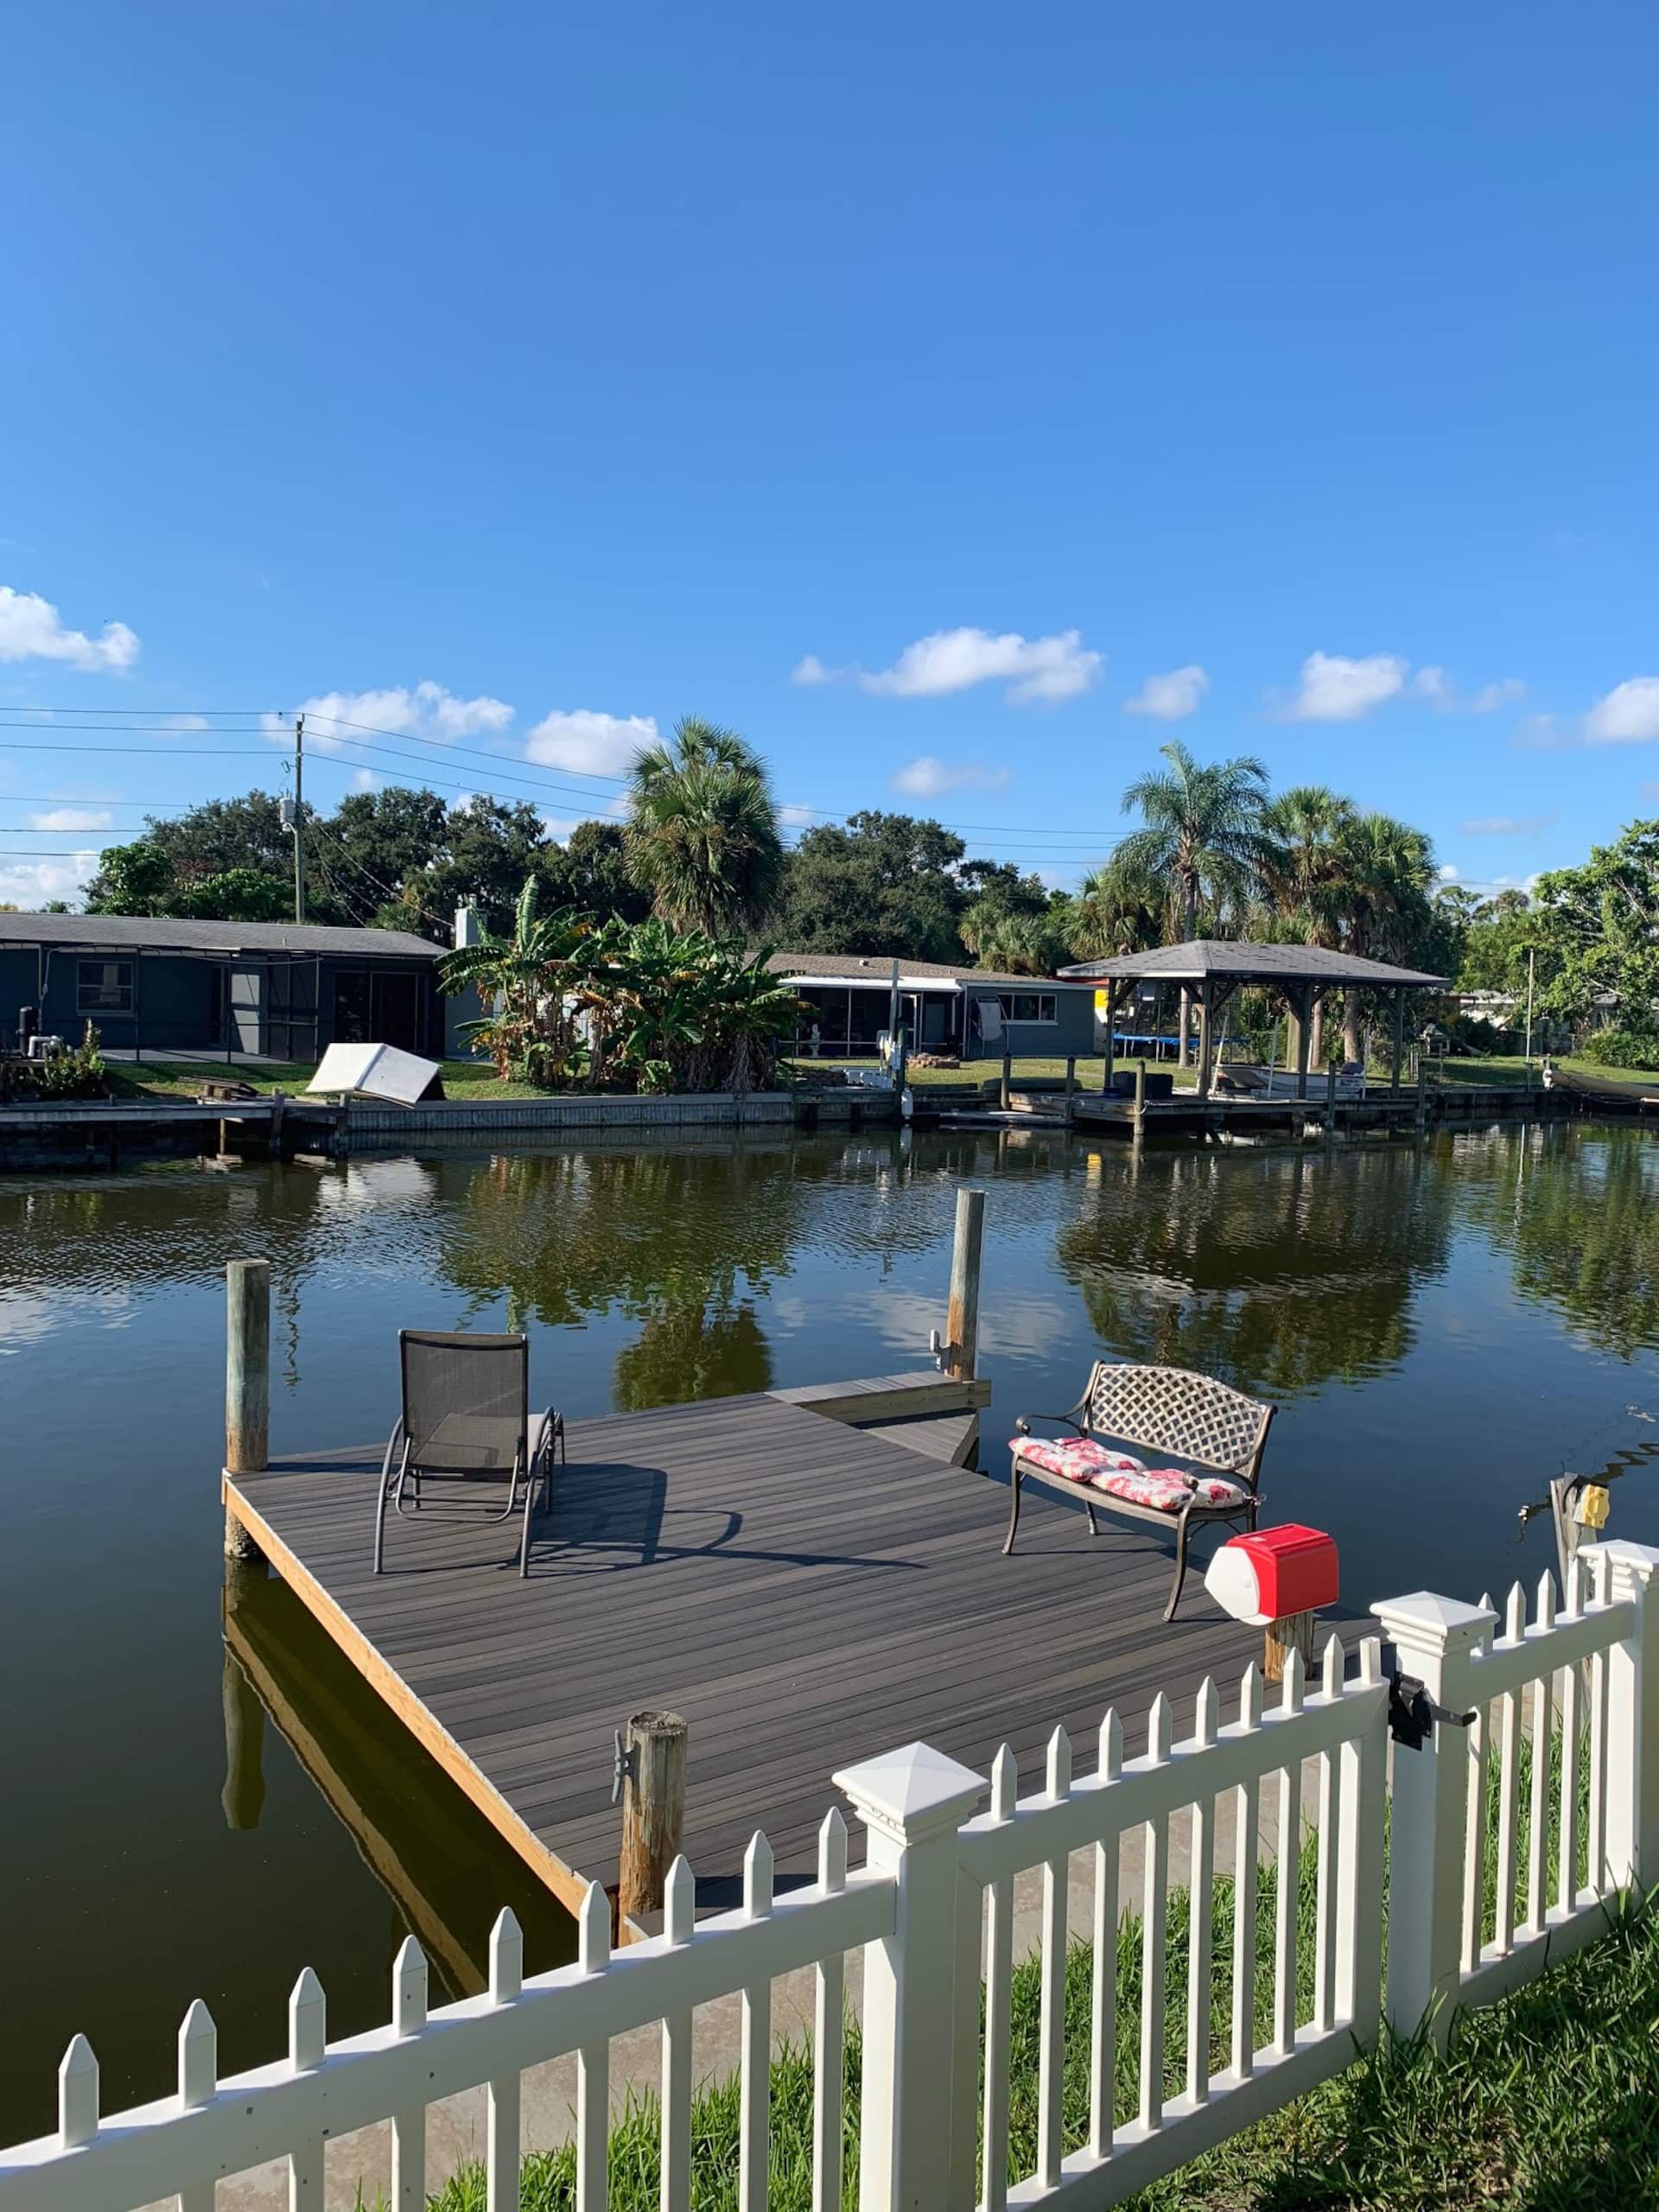 Image of Airbnb rental in Cocoa Beach Florida